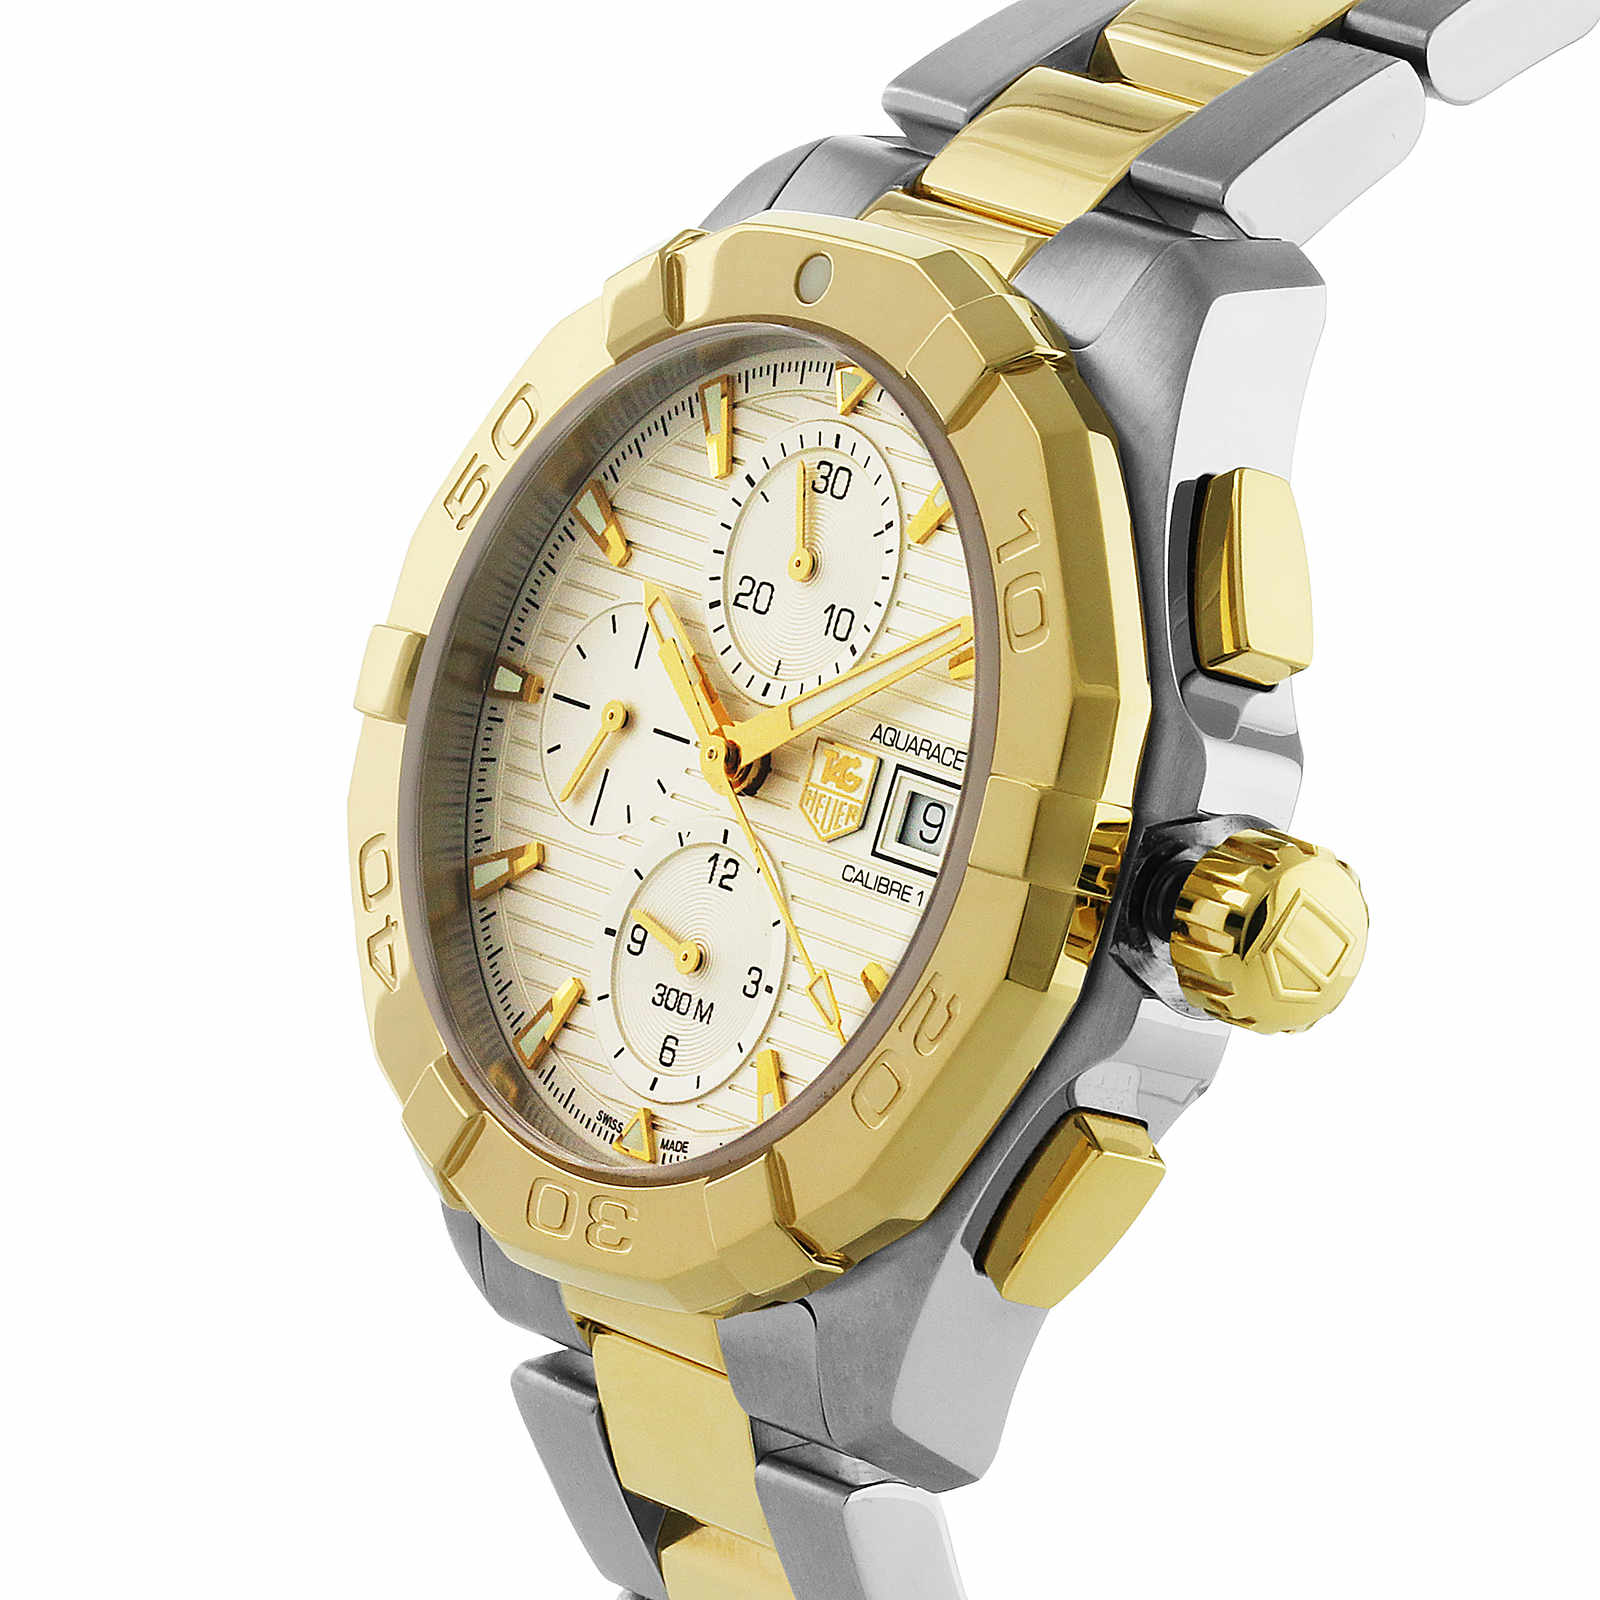 Tag heuer gold watches for men